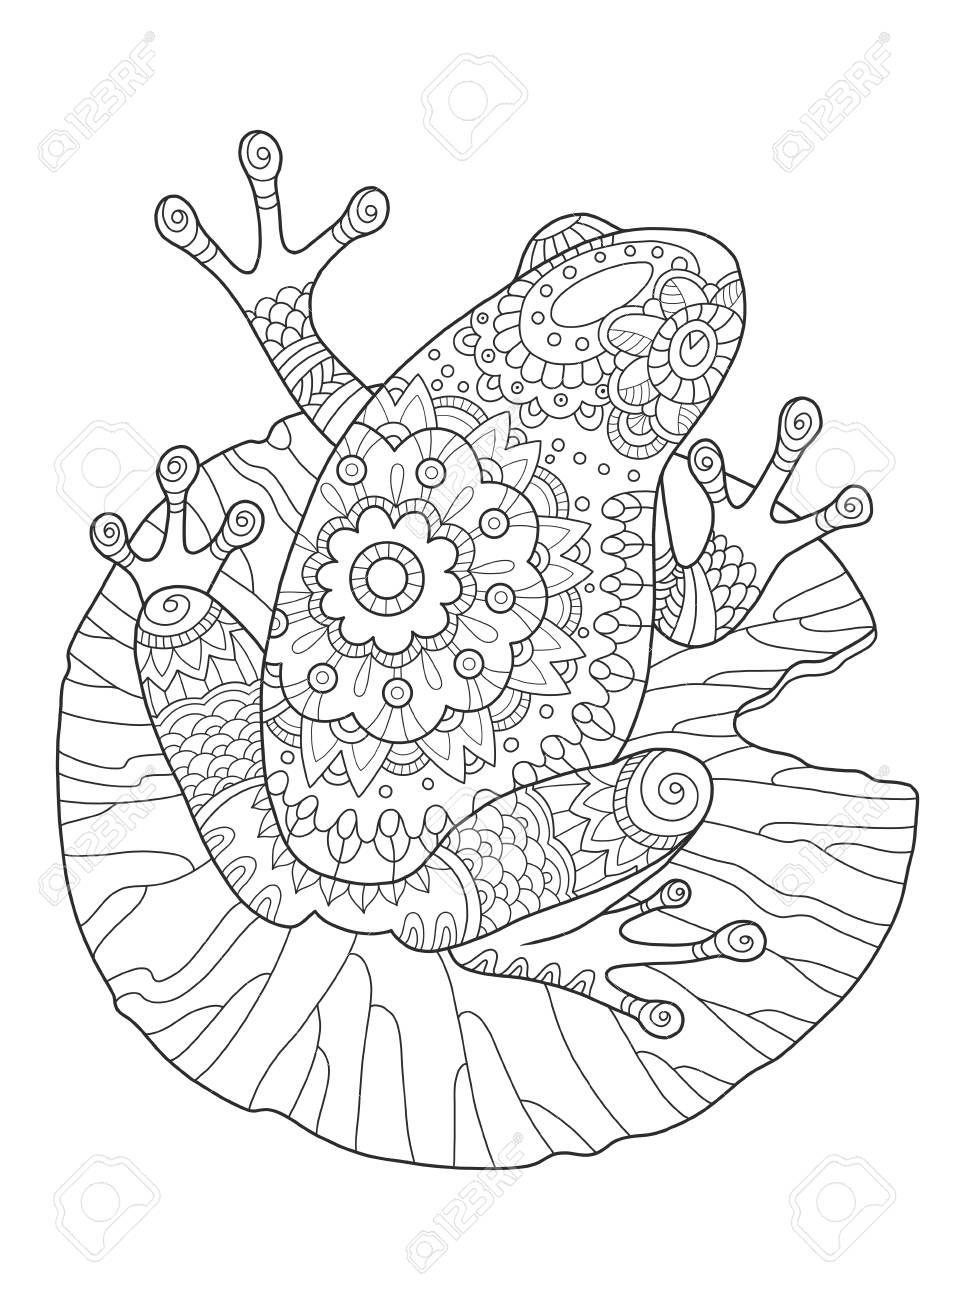 Frog Coloring Book Vector Illustration Affiliate Coloring Frog Book Illustration Frosch Malvorlagen Mandala Zum Ausdrucken Kostenlose Ausmalbilder